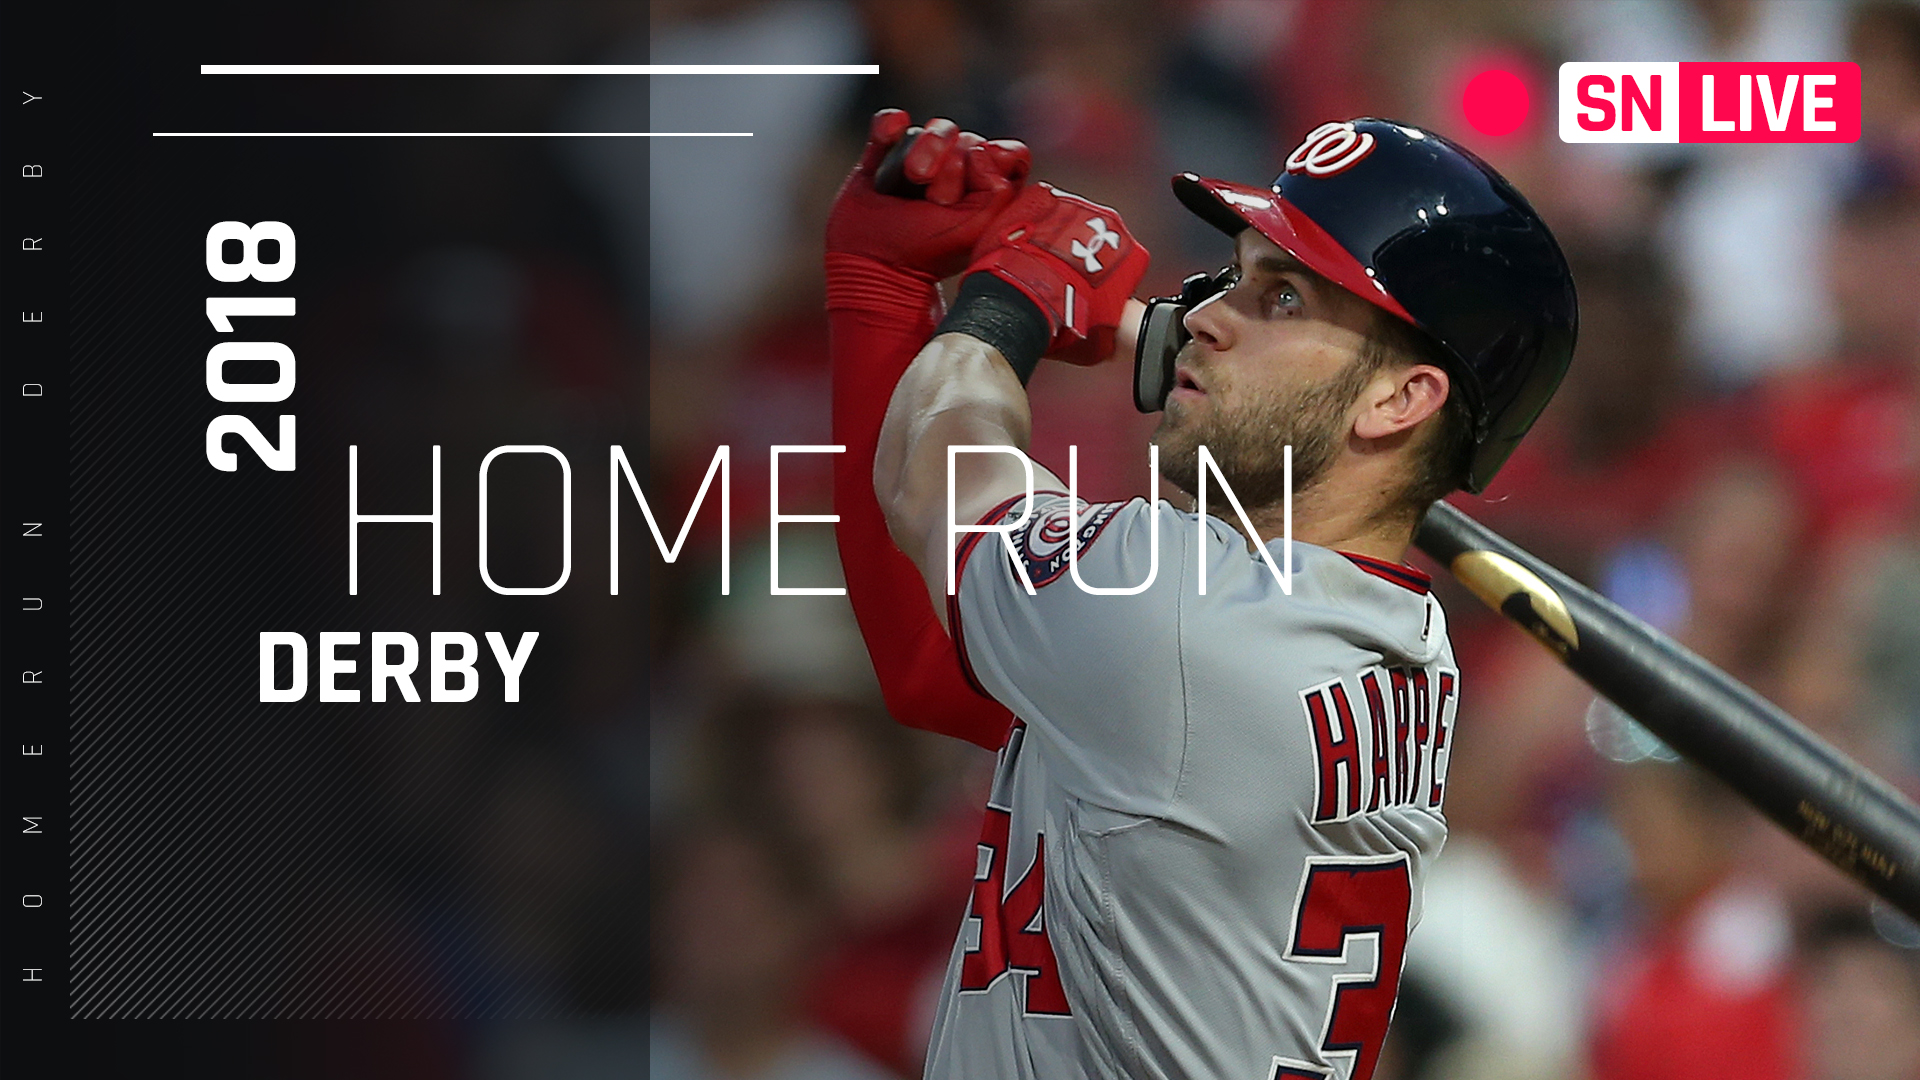 MLB Home Run Derby 2018 results: Bryce Harper mashes epic dingers to take home derby crown